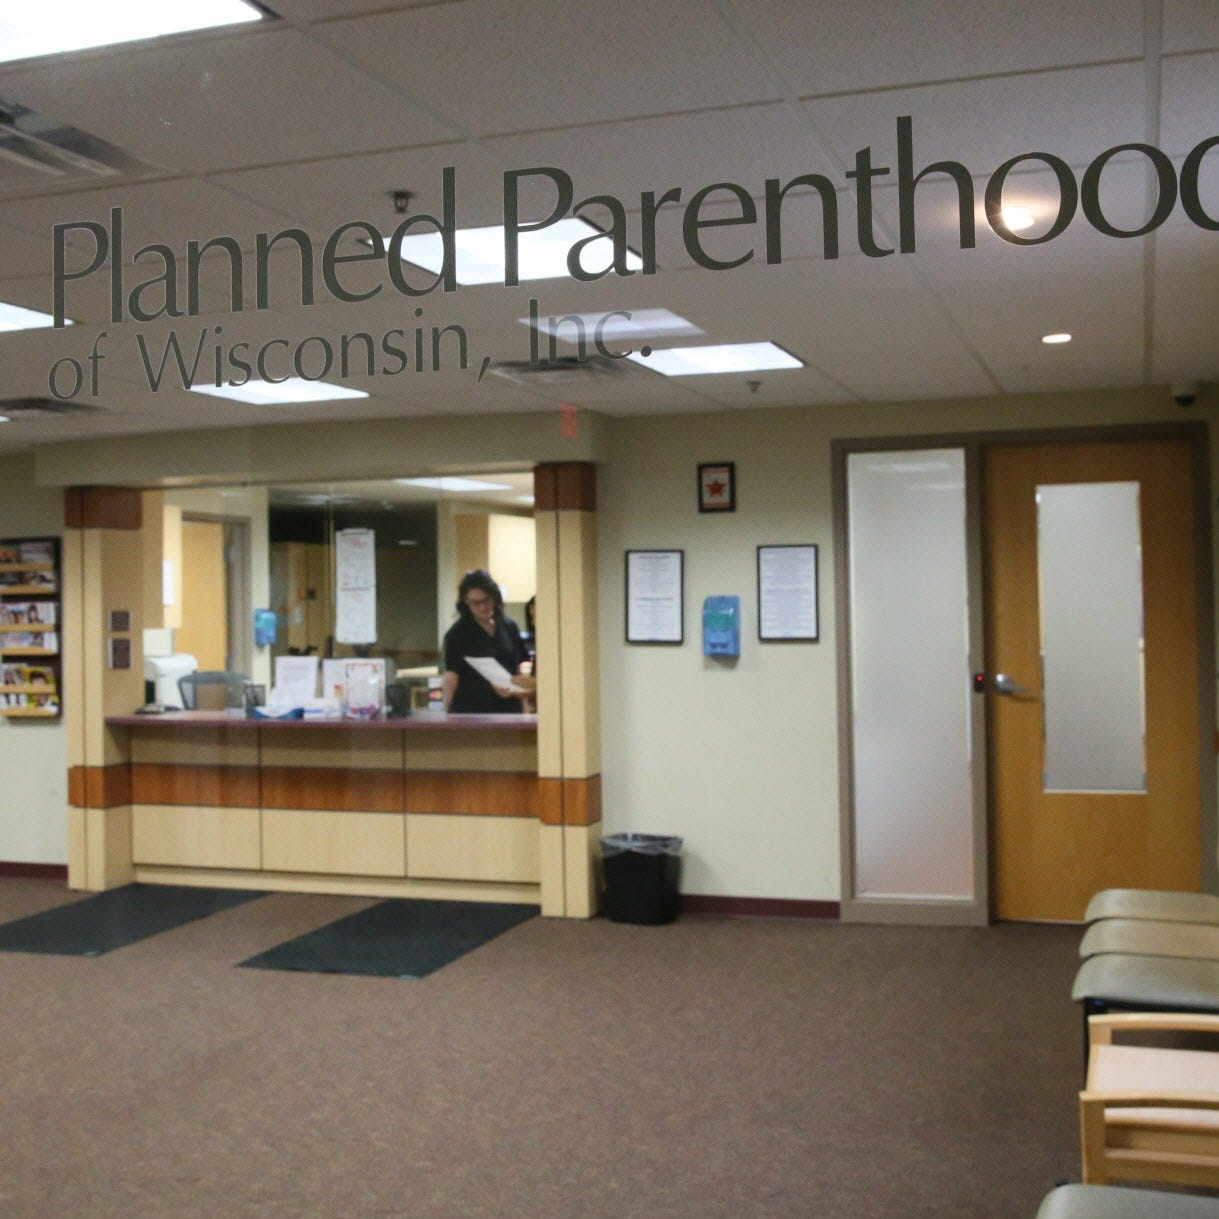 Planned Parenthood sues to overturn some Wisconsin abortion restrictions